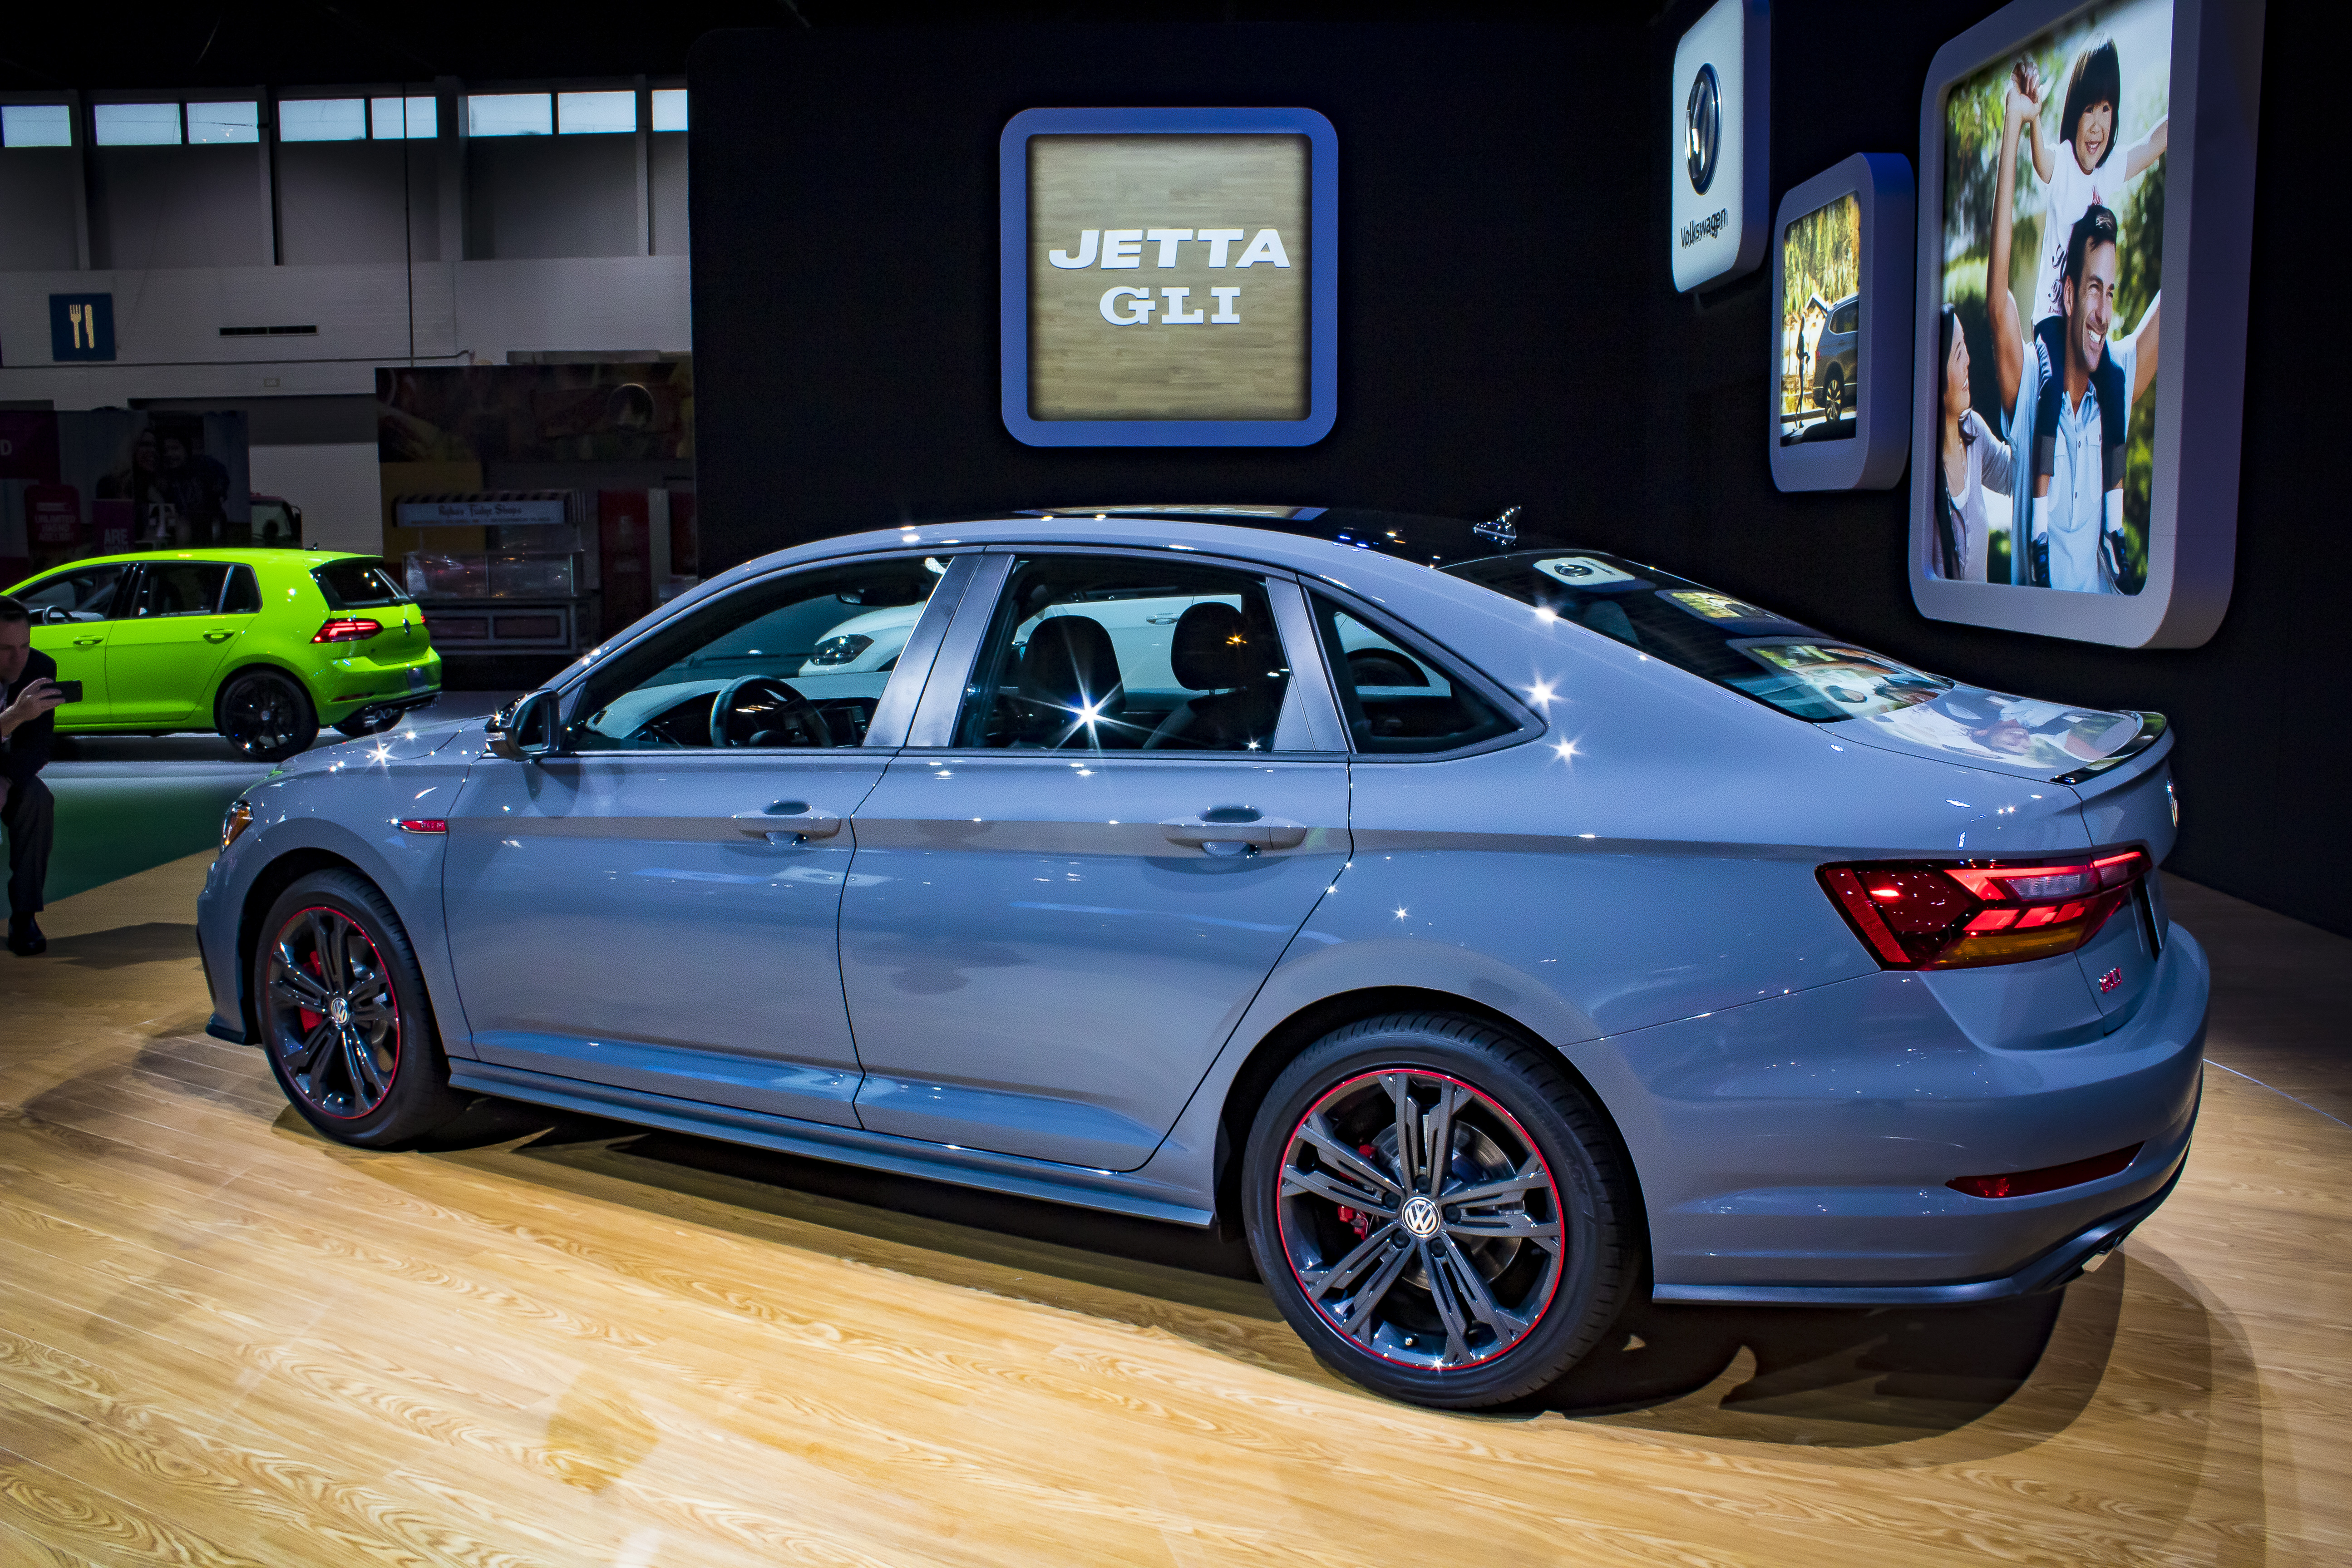 2020 volkswagen jetta gli35 top speed top speed